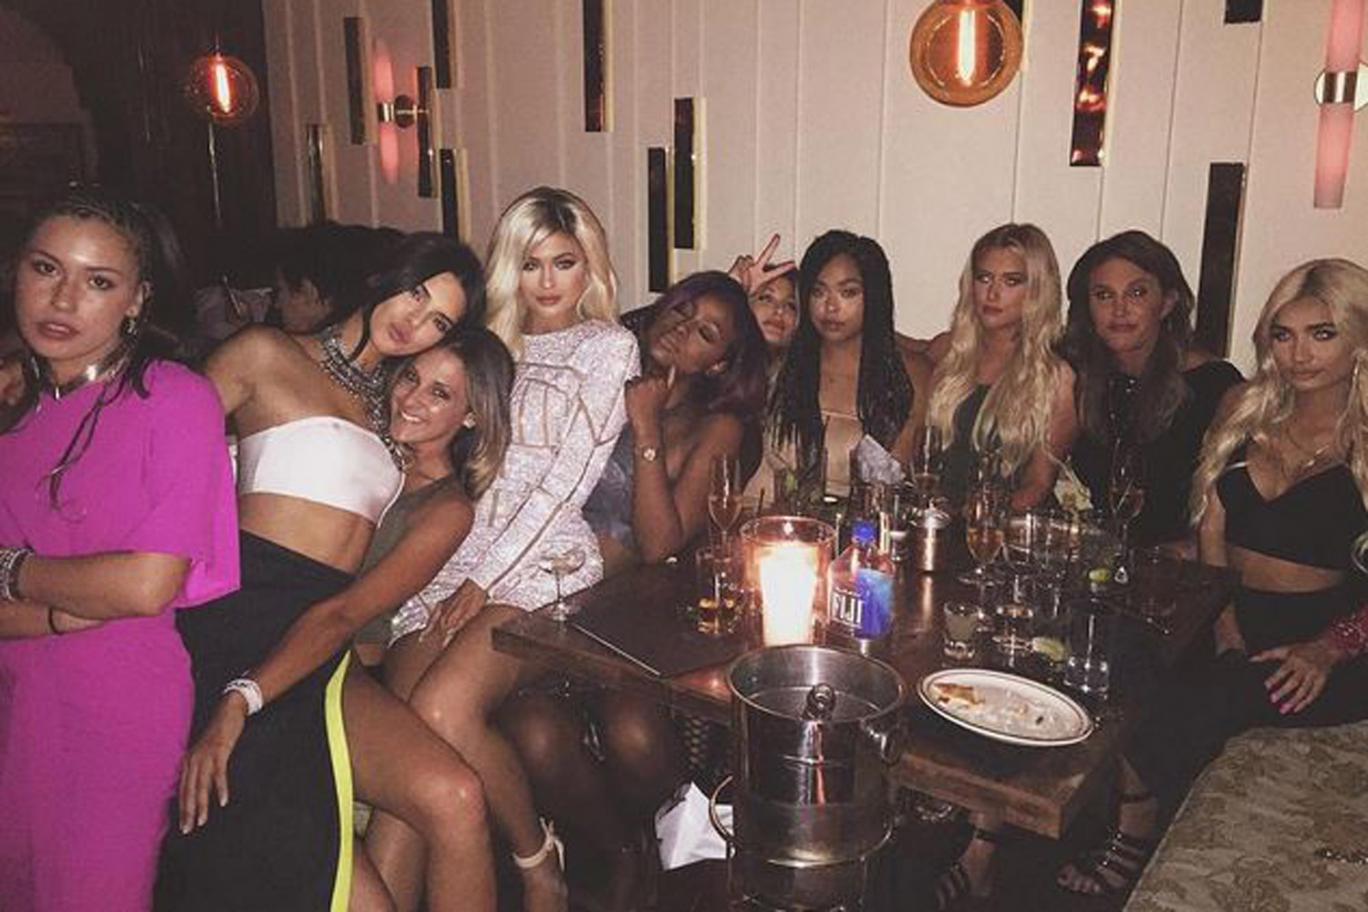 Kylie Jenner: The Latest Scoop